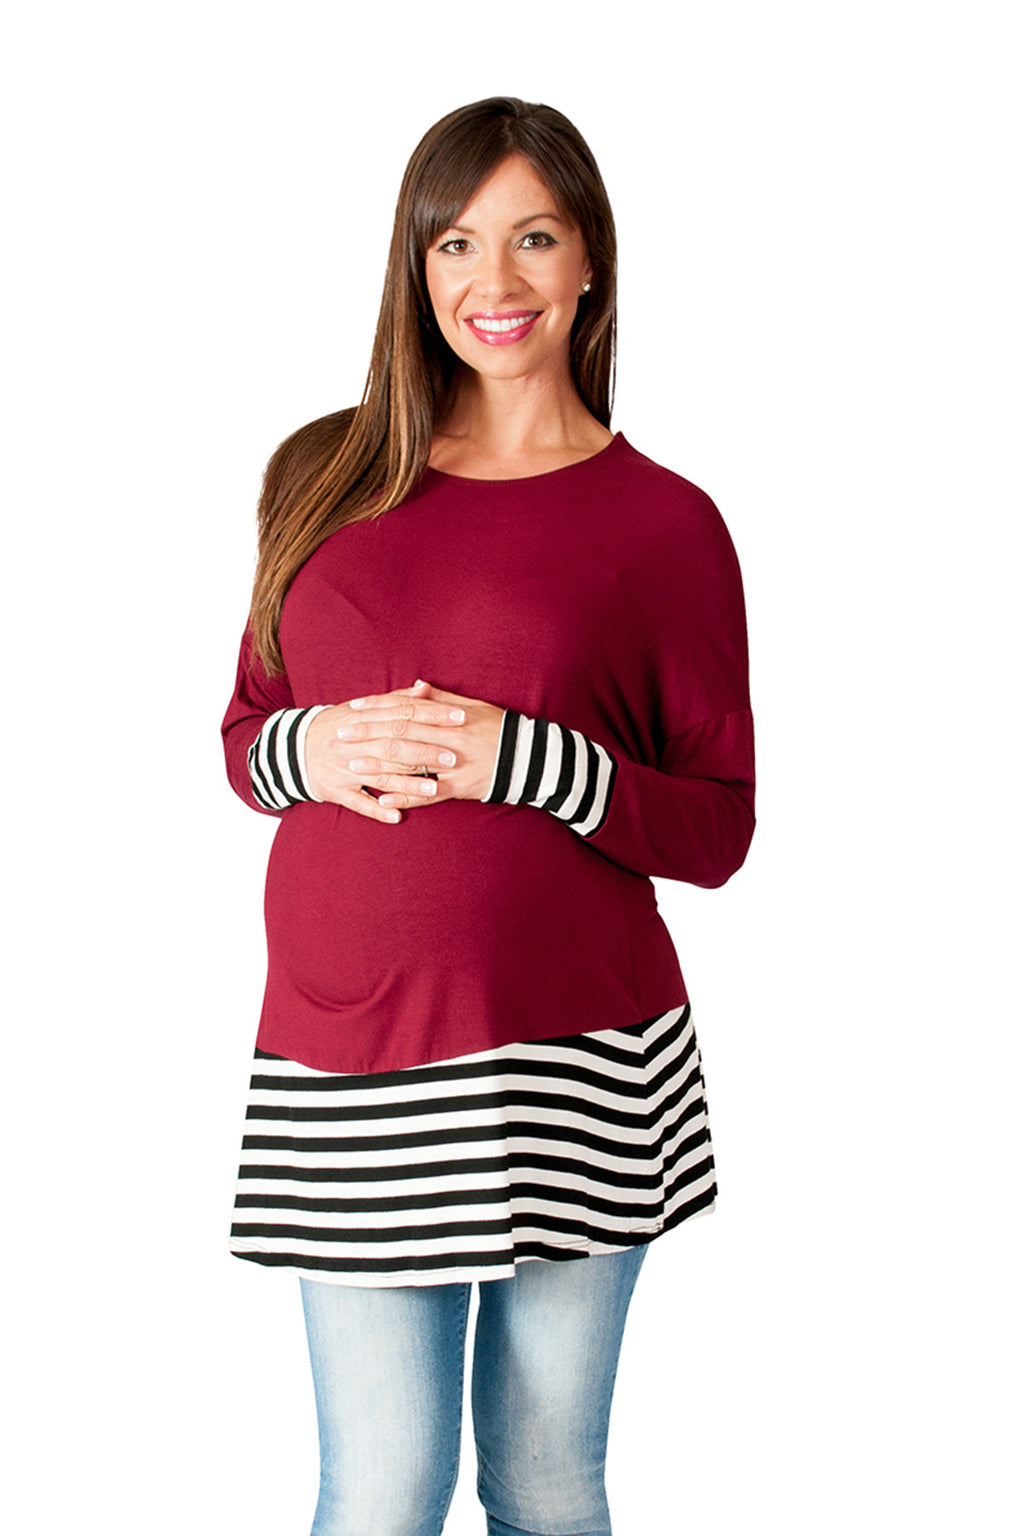 Maternity Tunic - Mommylicious